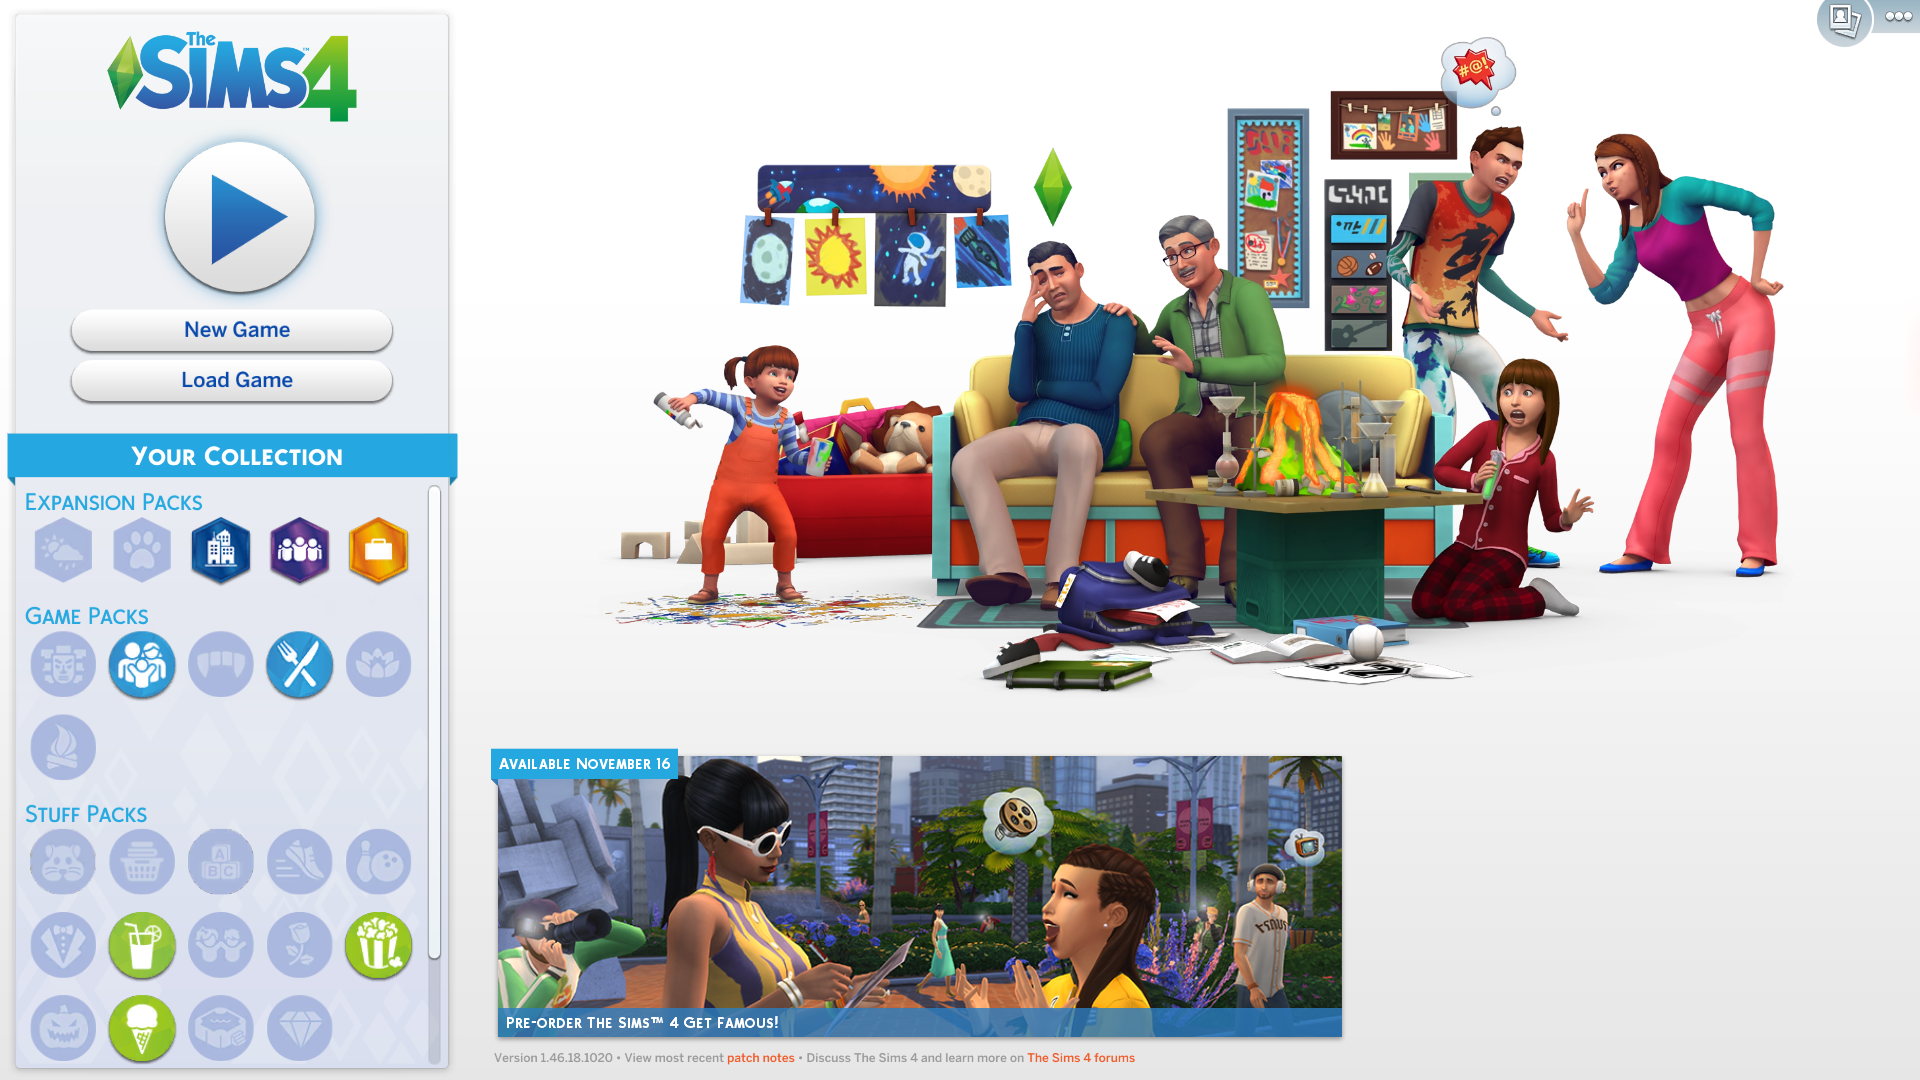 How To Find Outdated Mods Sims 4